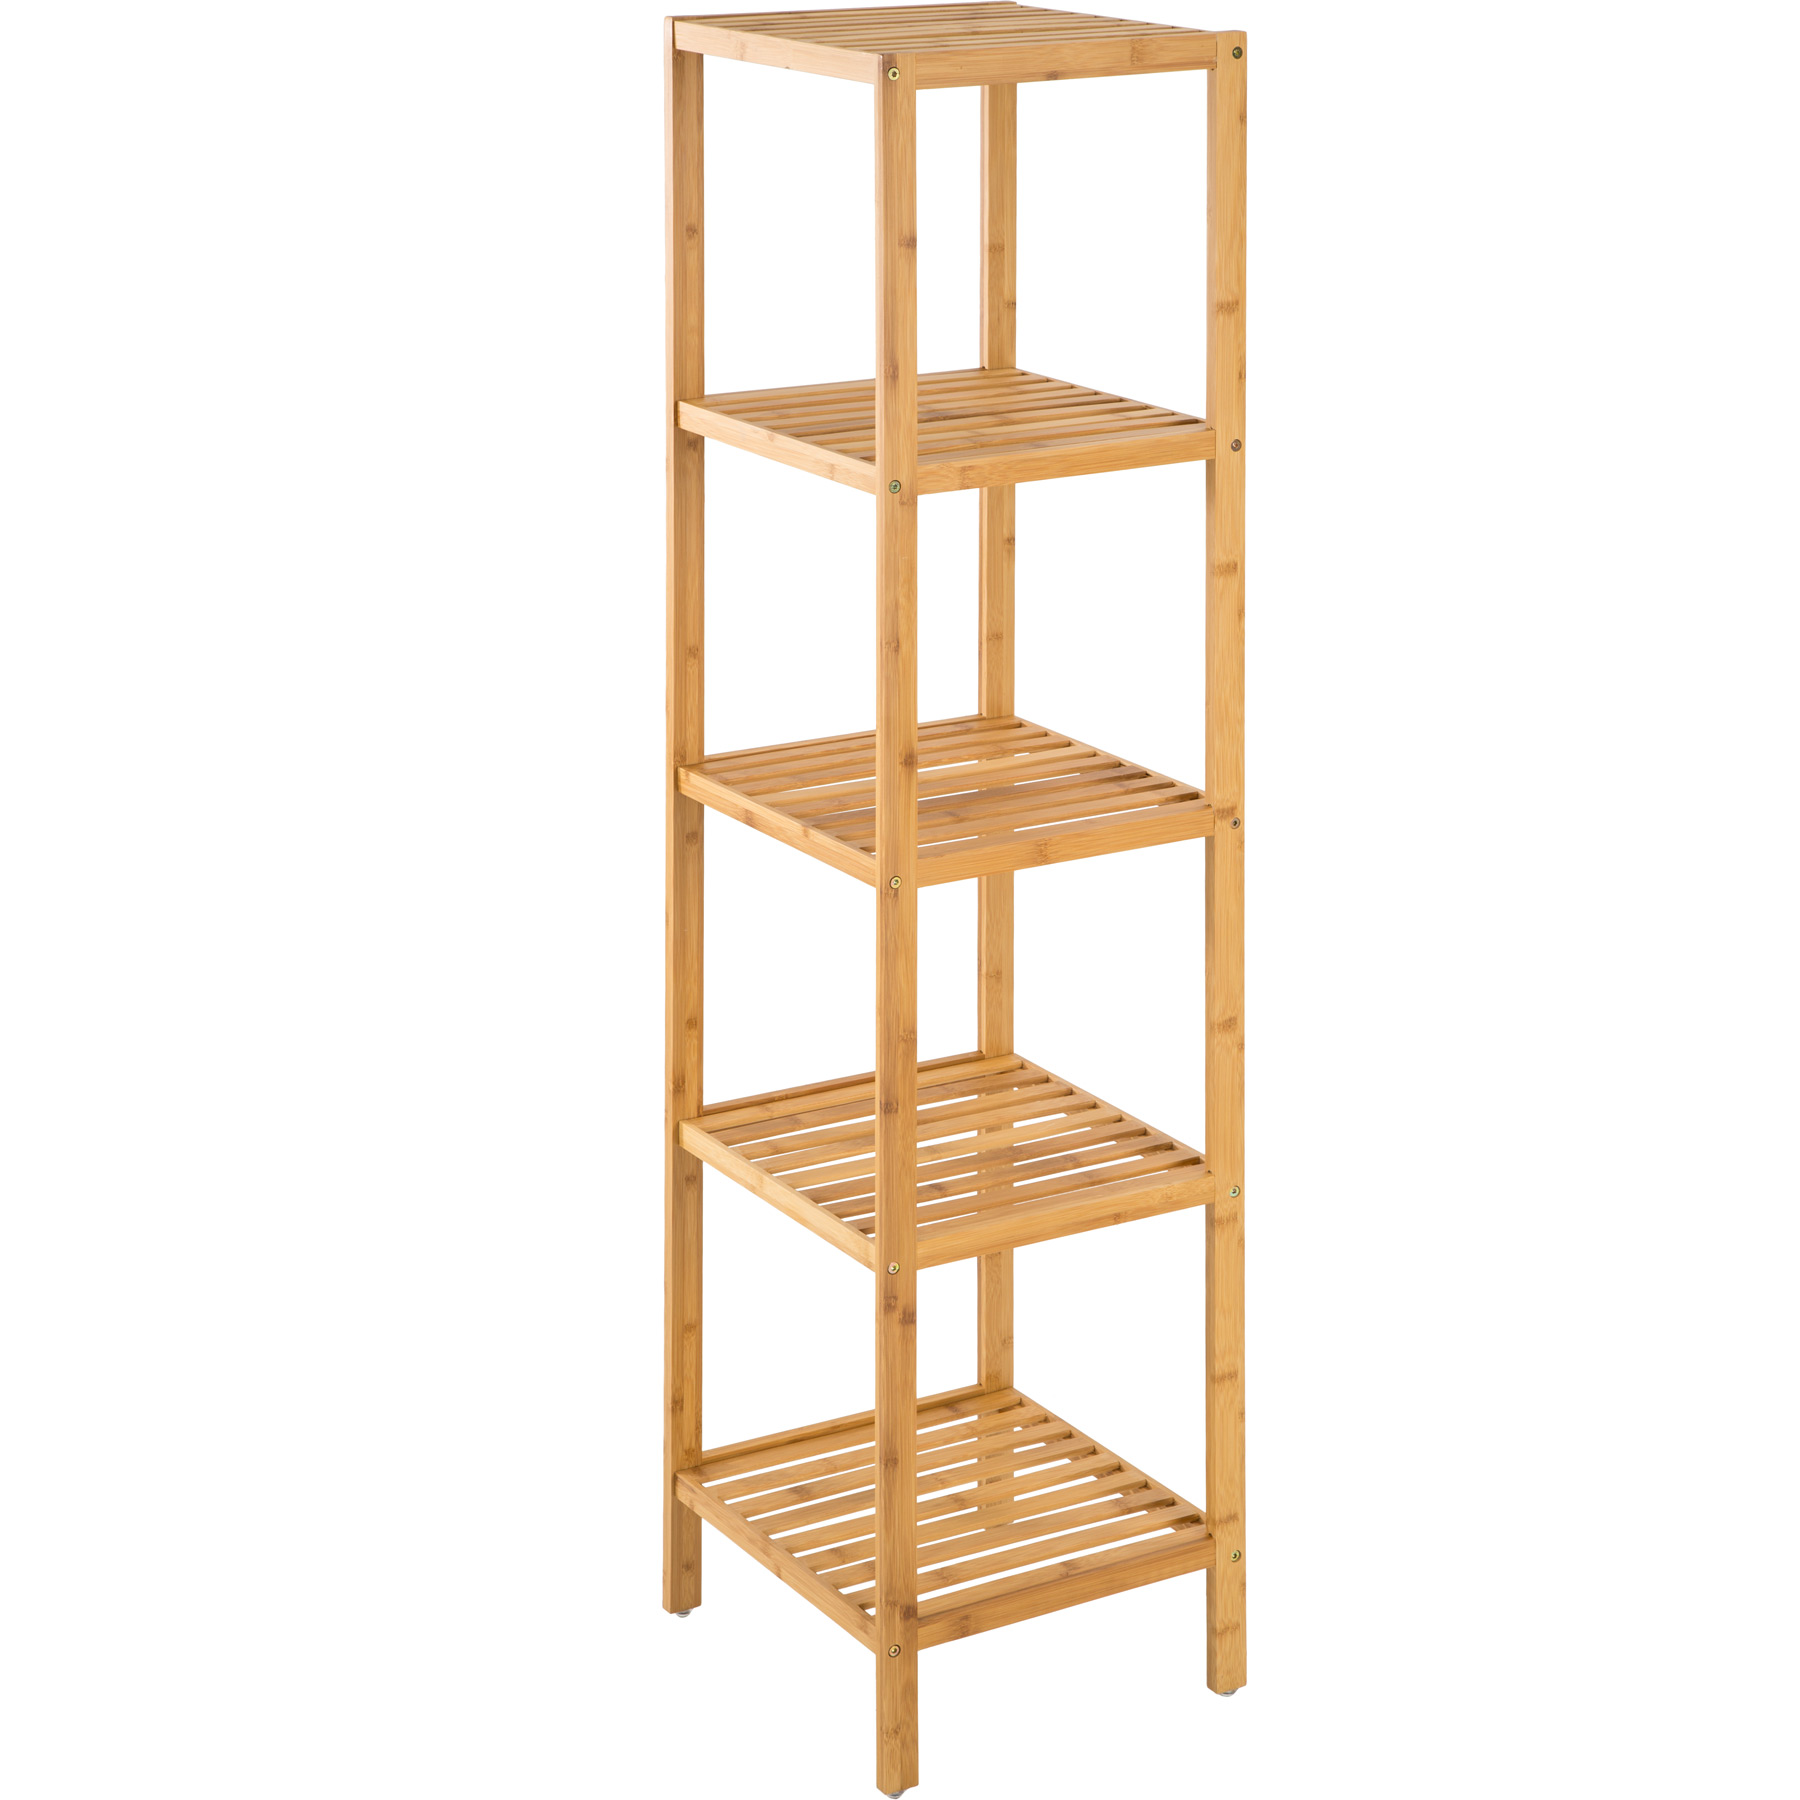 Cool Brand New Bamboo Organizing Shelf If You Are In Need Of A Simple &amp Beautiful Organizing Shelf That Is Ecofriendly As Well, This Is What You Need With Simple Assembly, This 100% Bamboo Shelf Is Aesthetically Pleasing &amp Can Serve